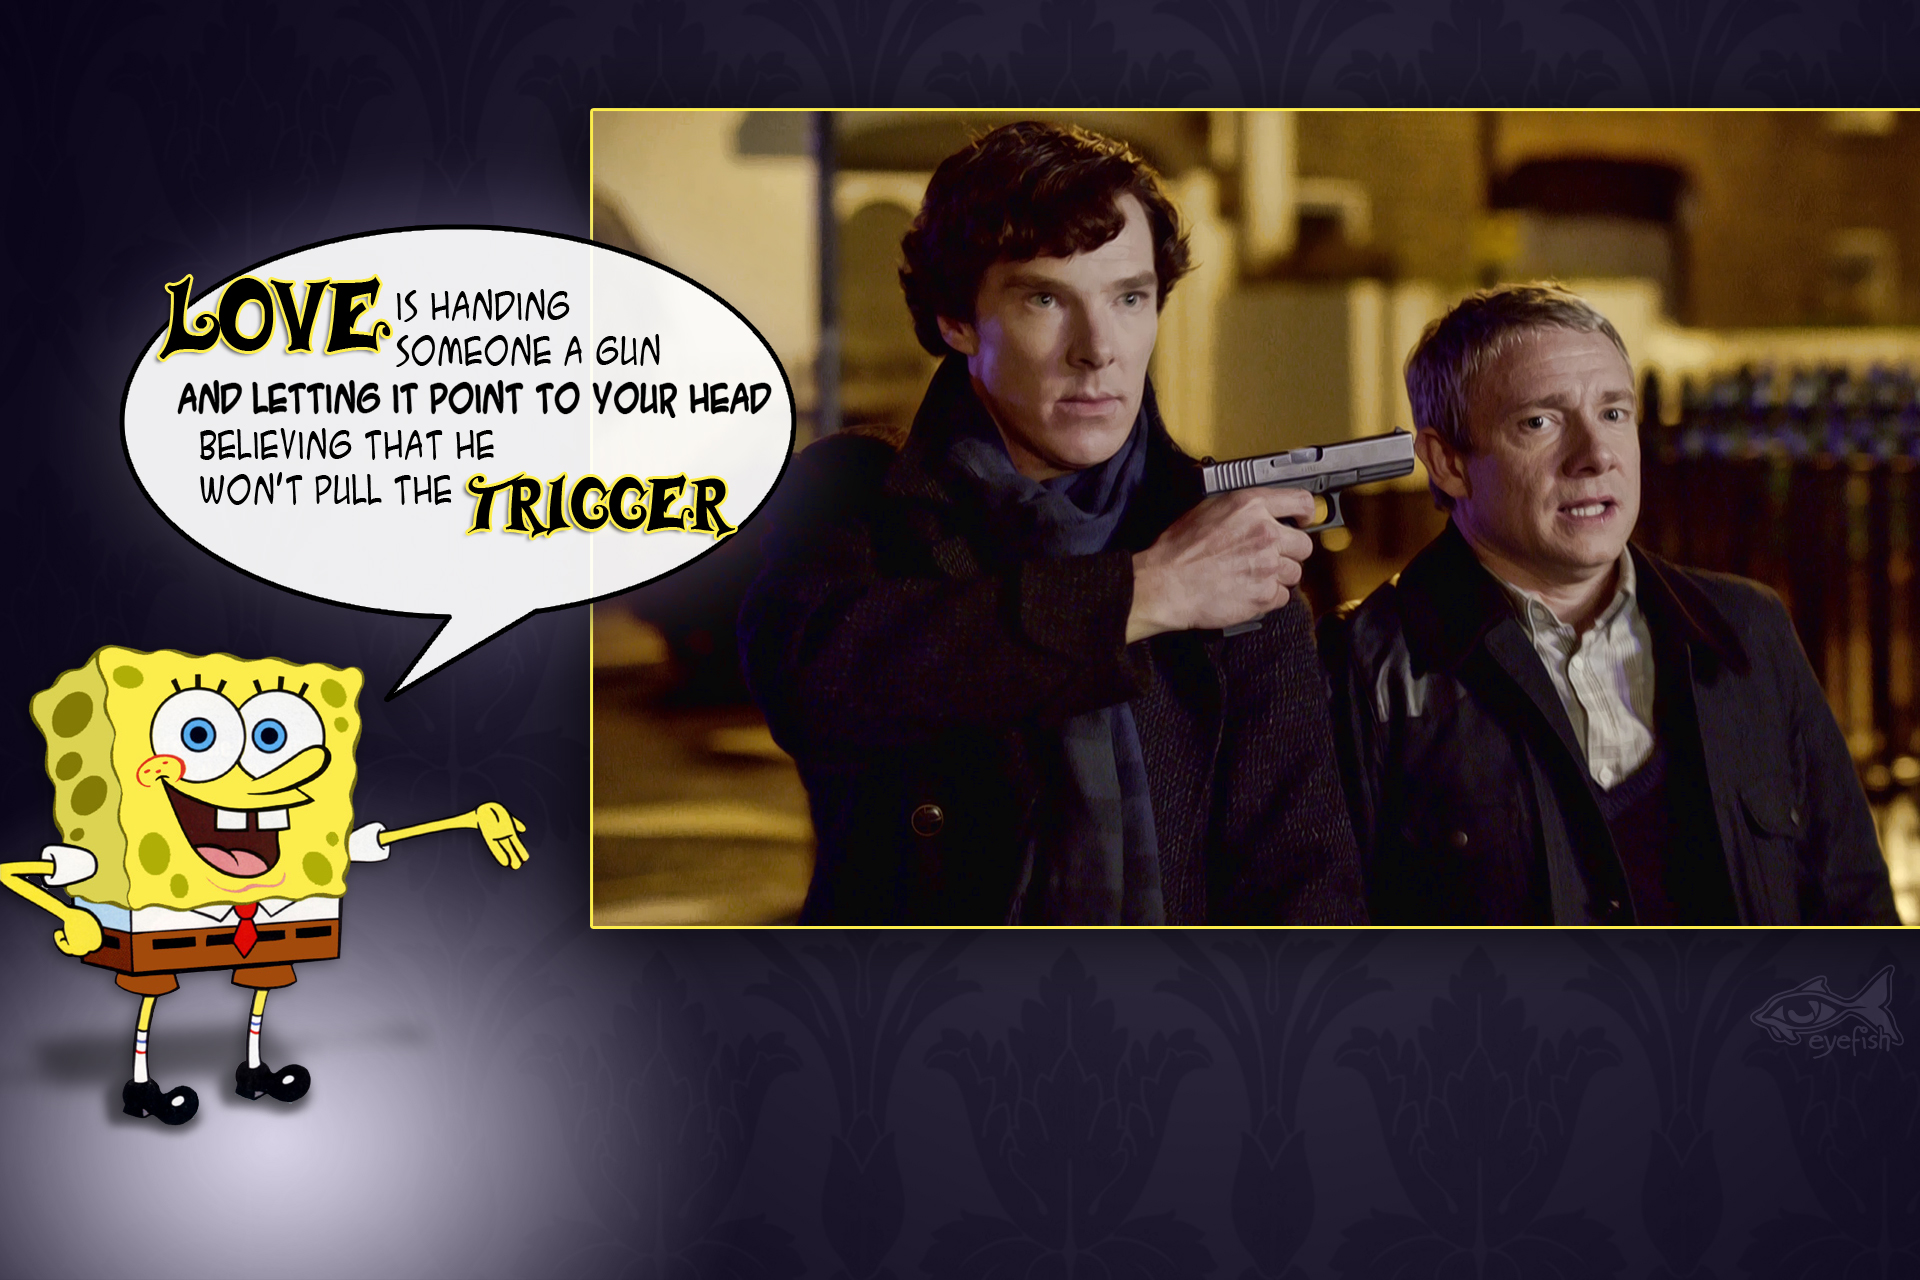 Sherlock Fan Art Wallpaper Spongebob Sherlock By Eyefish Ddfrxe